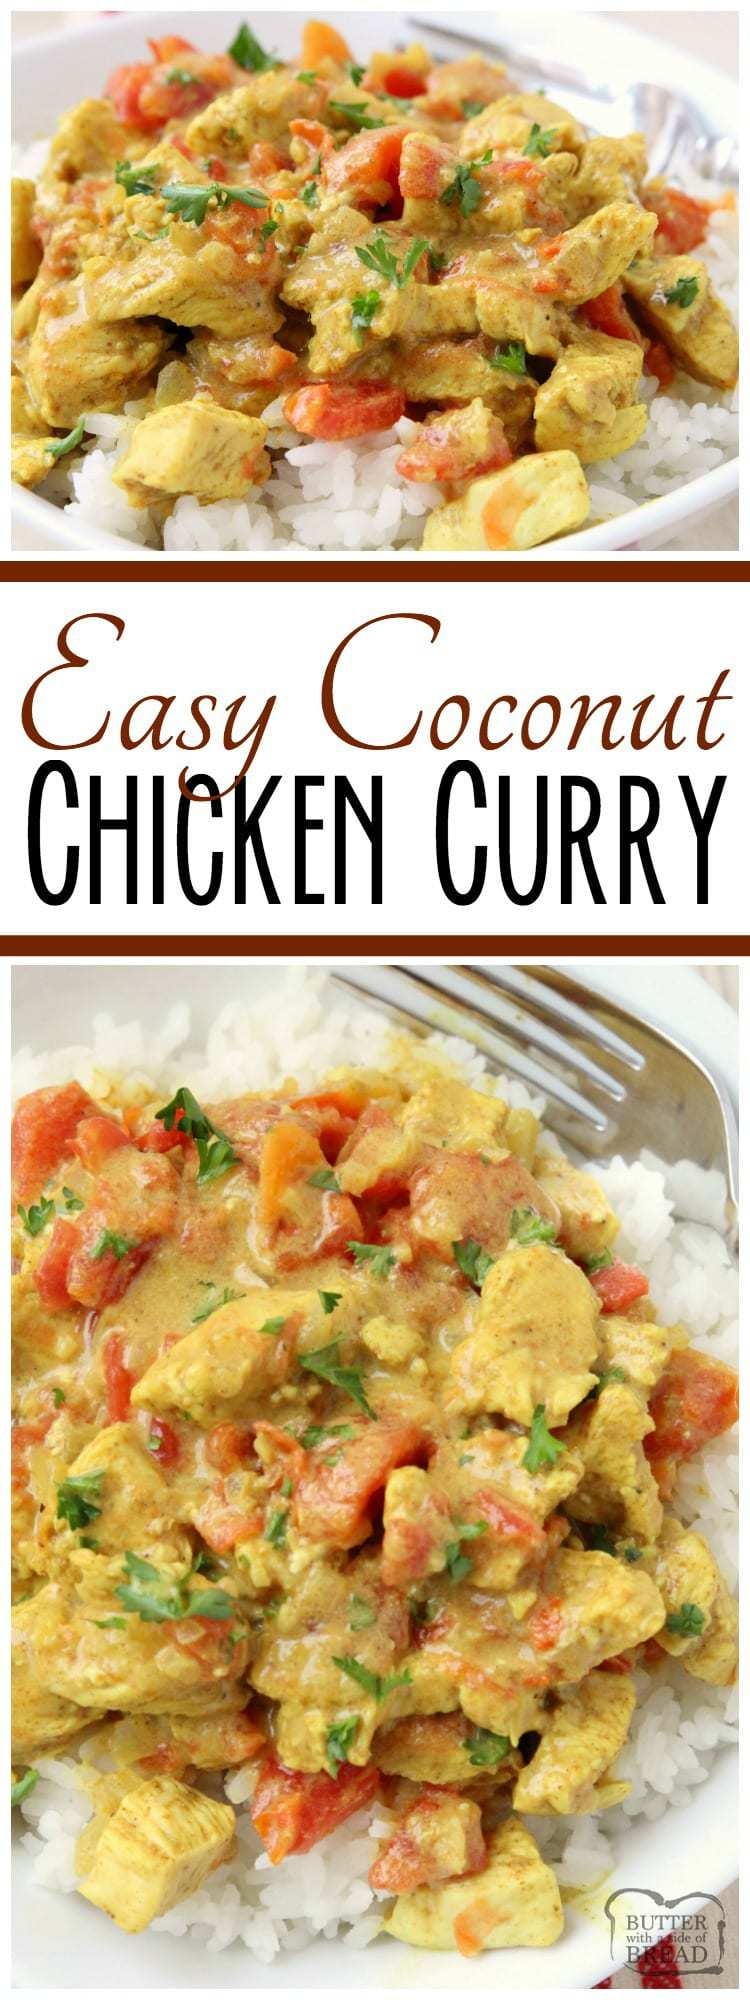 Coconut Curry Chicken recipe perfect for a busy weeknight meal! Simple, flavorful and healthy chicken dinner for anyone who loves a mild curry recipe. Our Coconut Curry Chicken recipe uses diced tomatoes, coconut milk and just enough curry to add flavor, but not make it too spicy. It's the perfect curry recipe for families!  #Coconut Curry #recipe with #chicken from Butter With A Side of Bread #dinner #food #curryrecipe #chickendinner #chickenrecipe